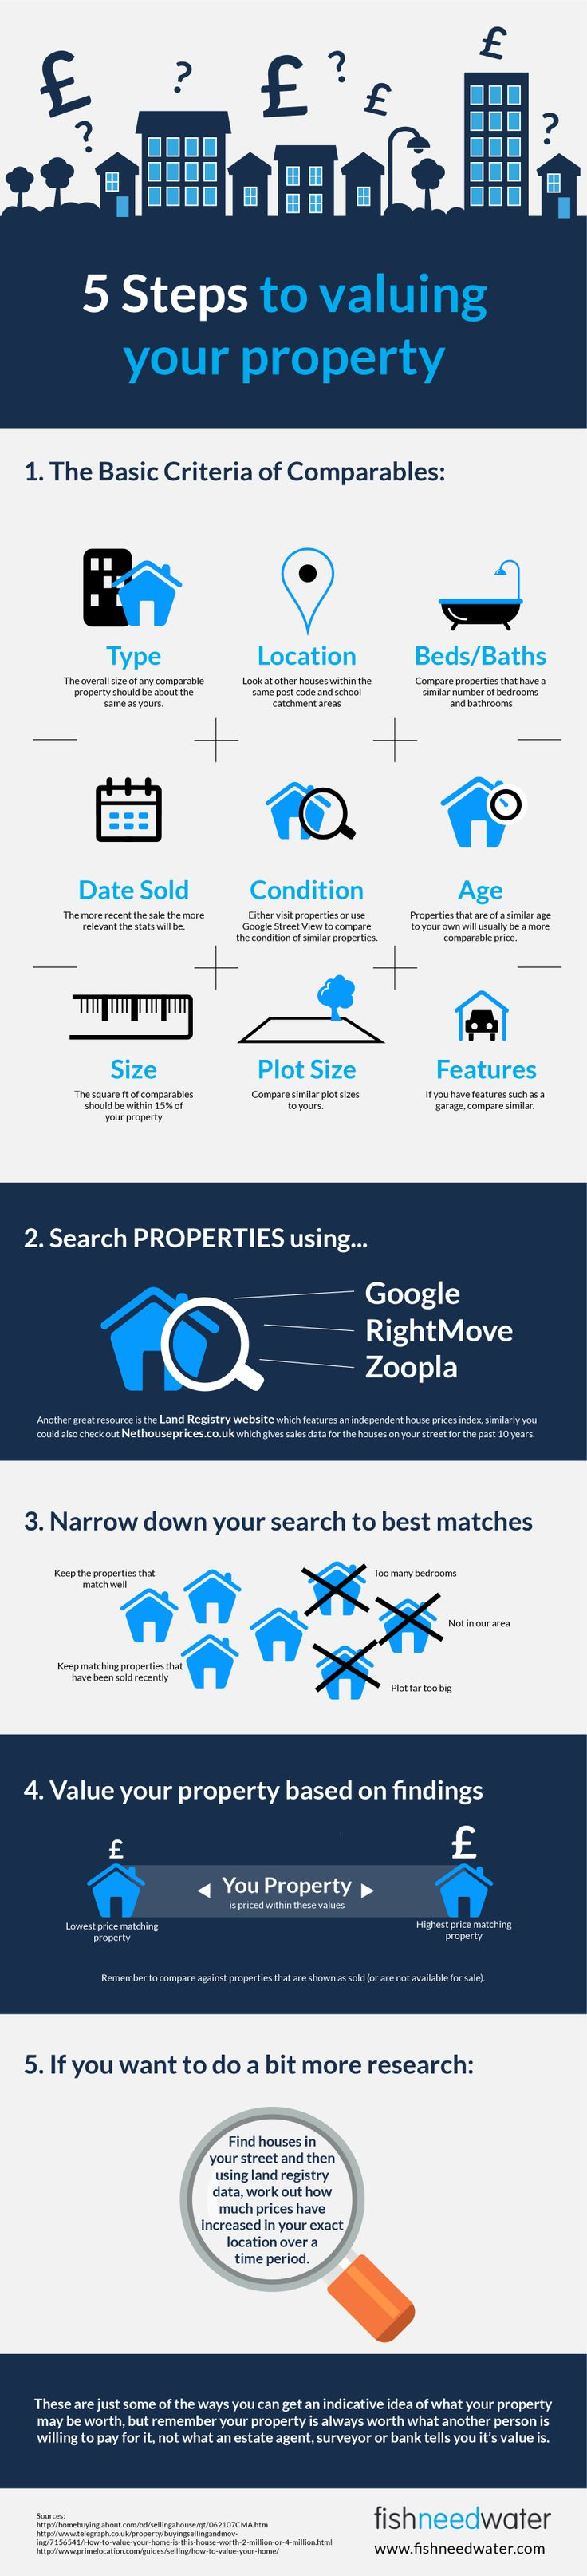 Ways to help you get an indicative idea of what your property may be worth